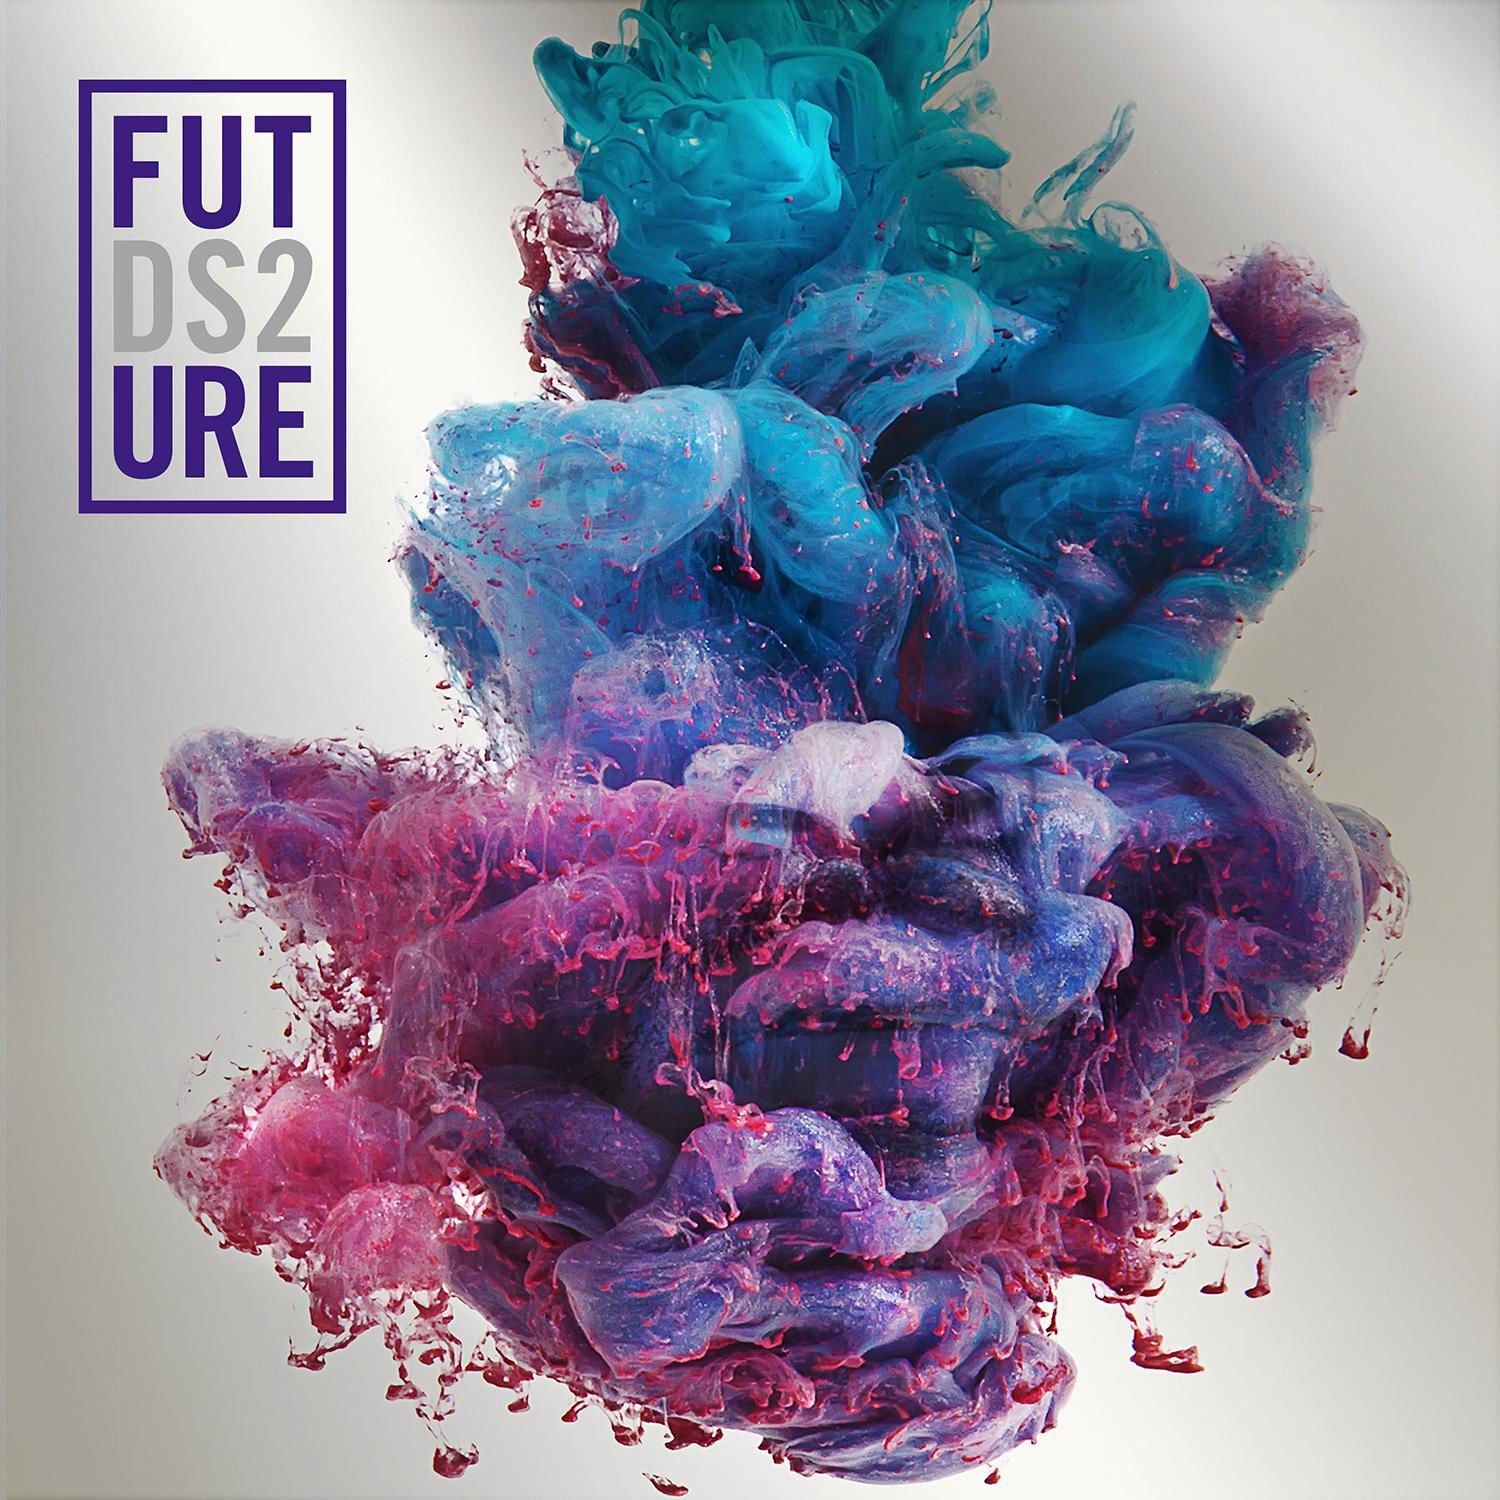 DS2 (Deluxe) by Future on iTunes | dqdq | Pinterest | Future